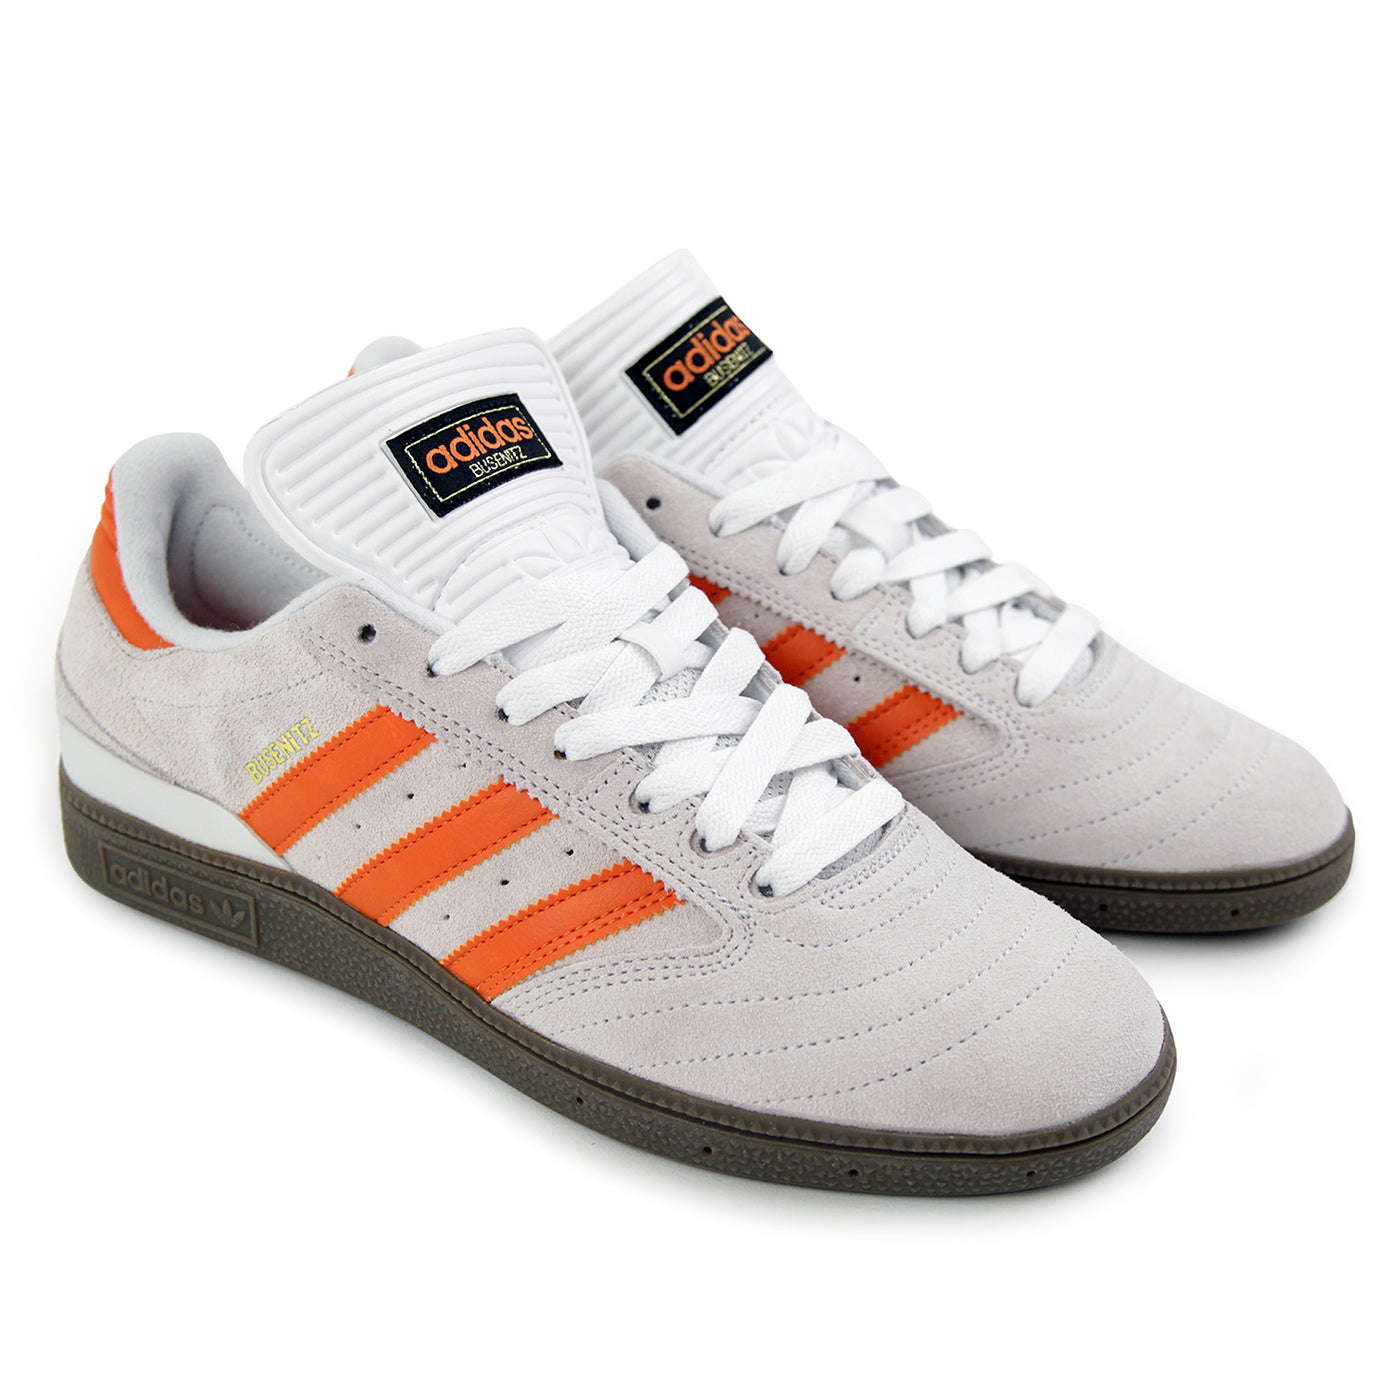 factory authentic 30644 b6d27 Busenitz Shoes in Crystal White  Craft Orange  Gum by Adidas